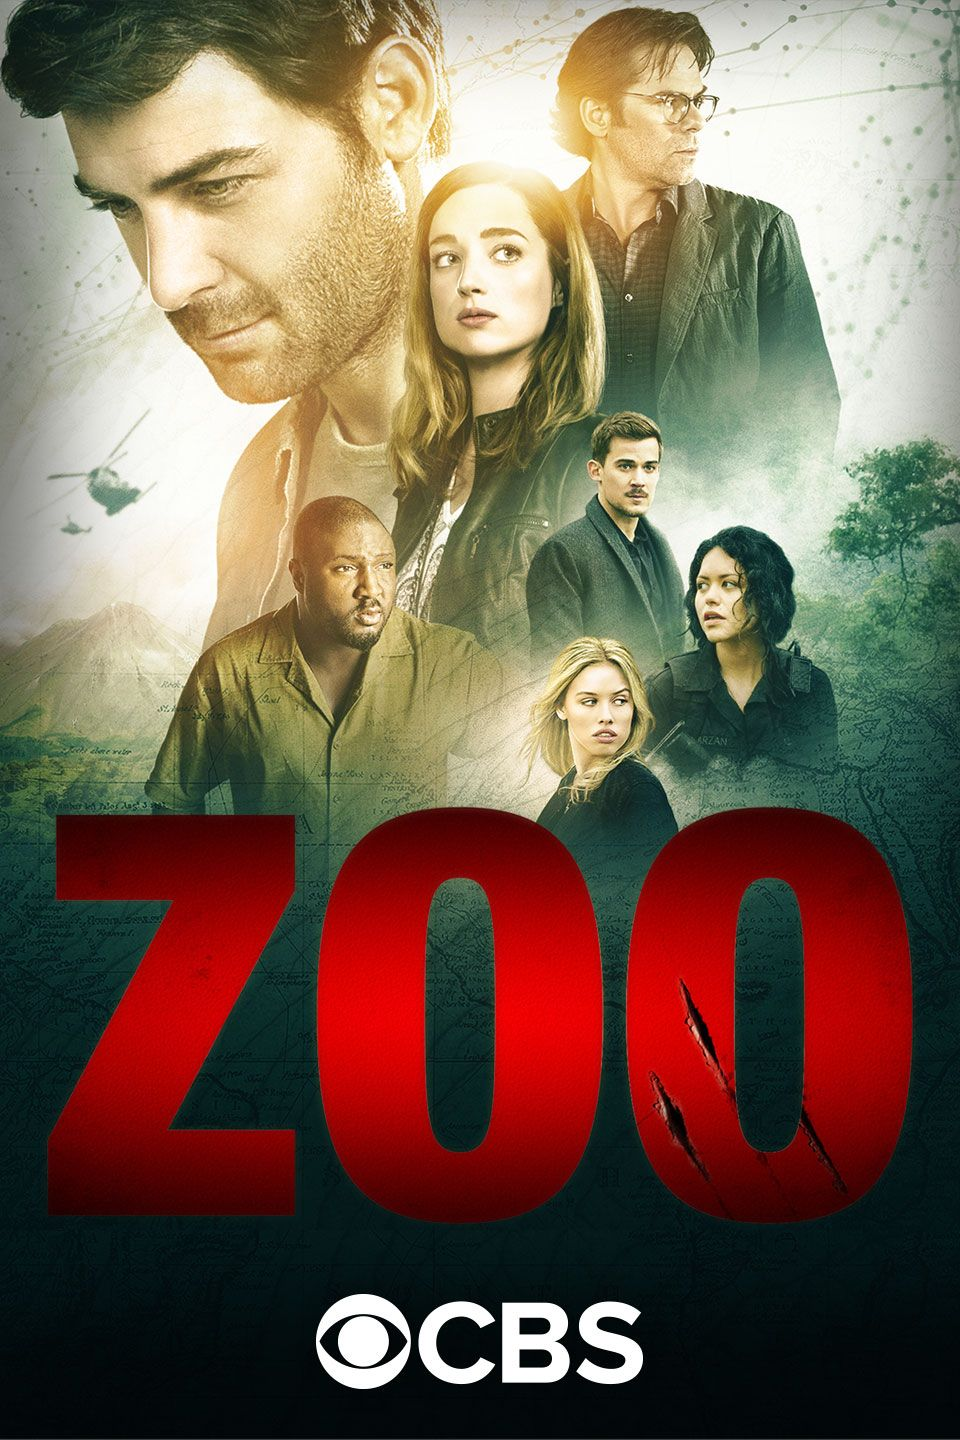 Zoo (2019) watch movies online 123 Zoo (2019) new movies